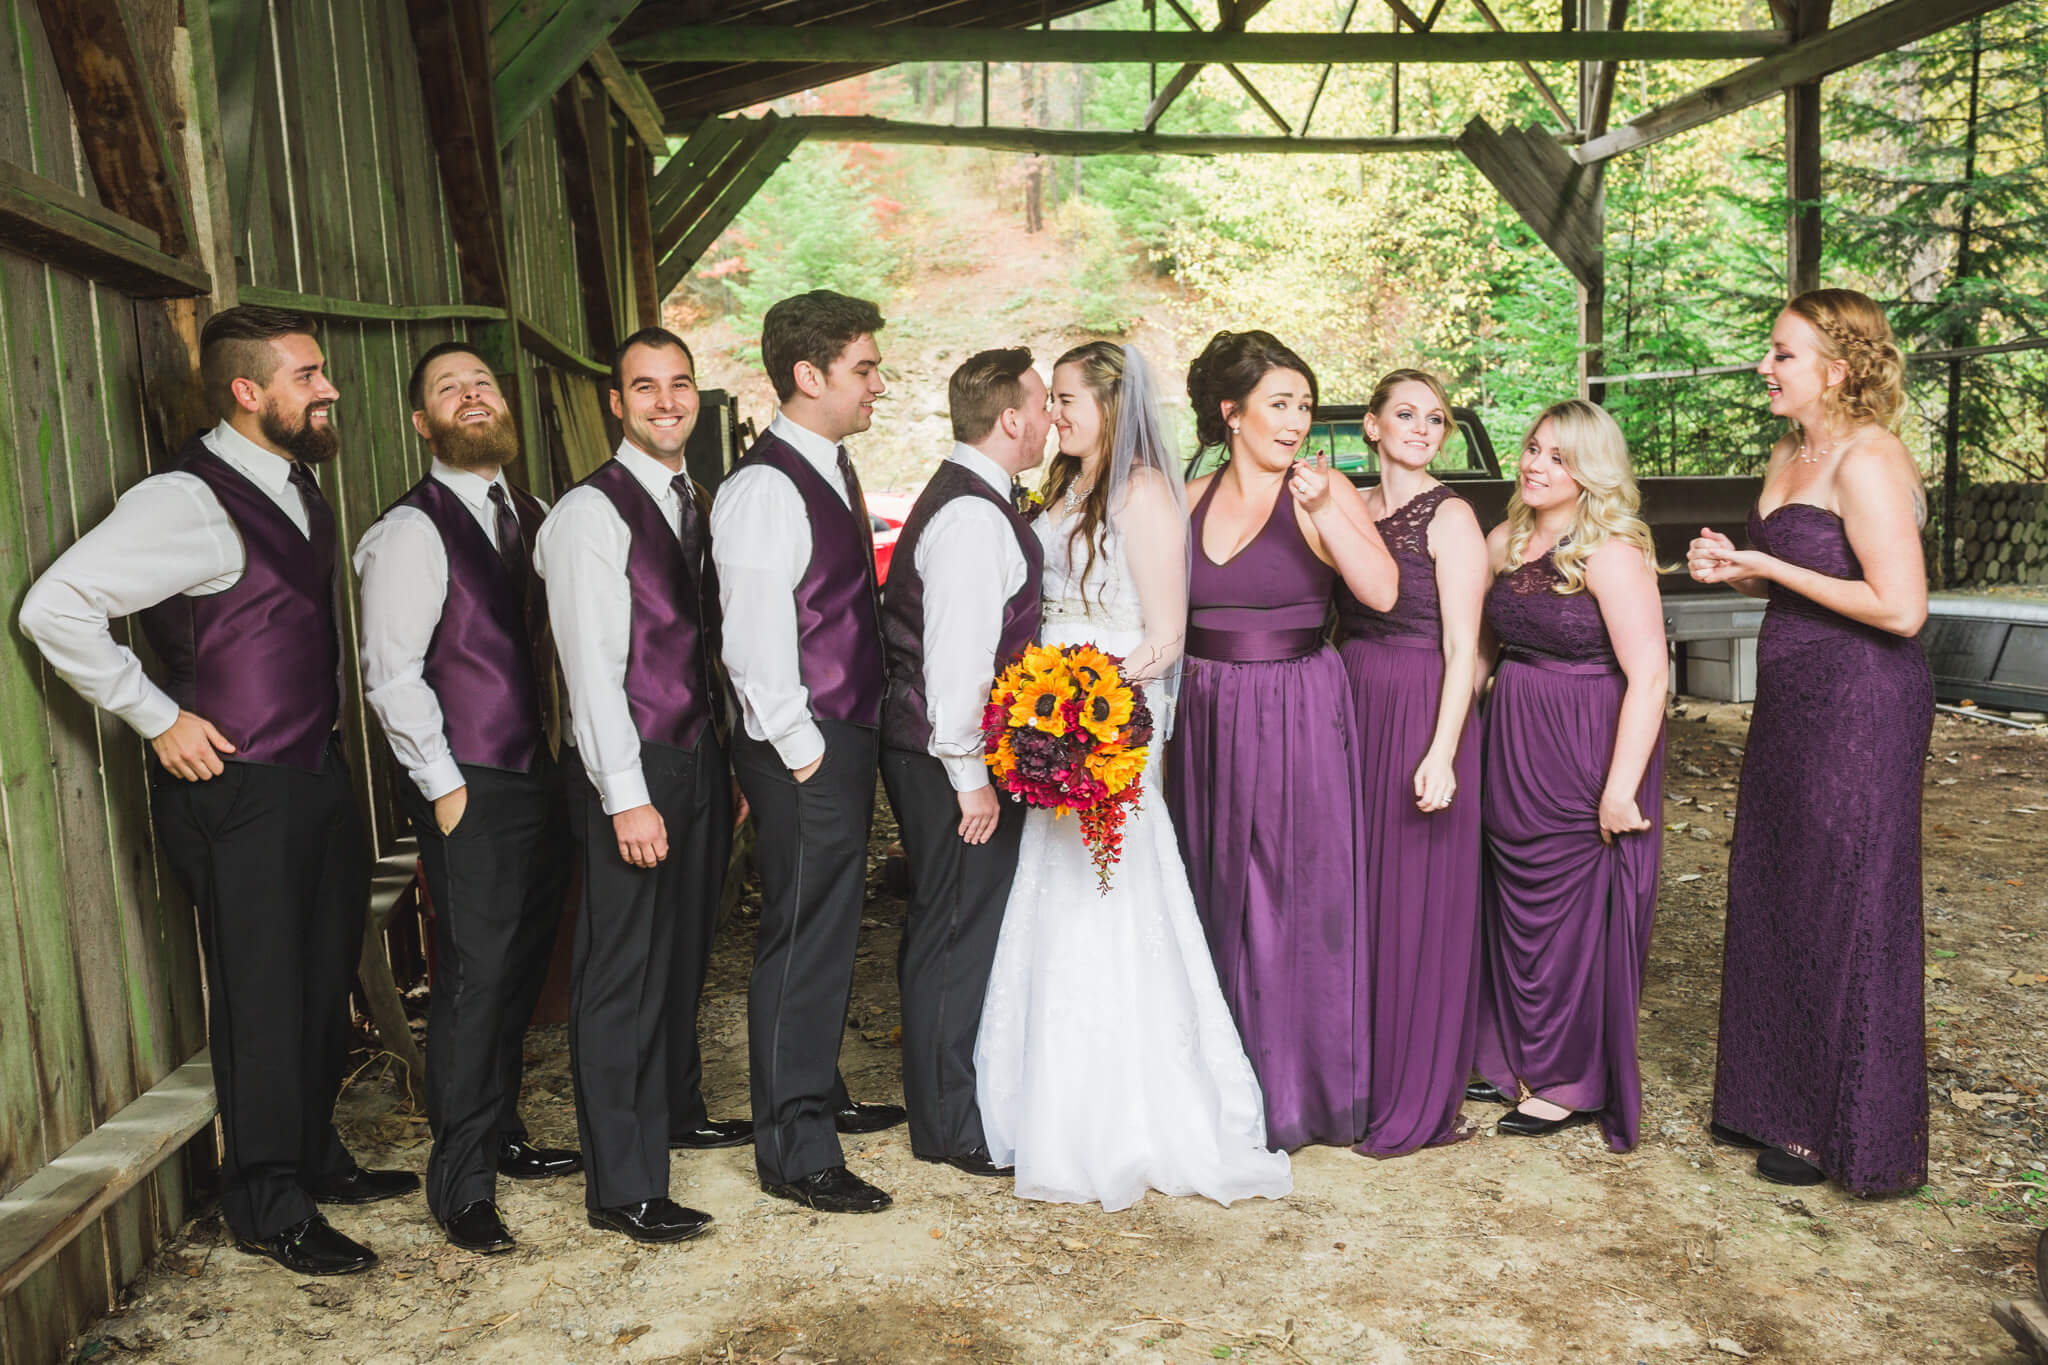 Mitcham's Barn Wedding-93.JPG